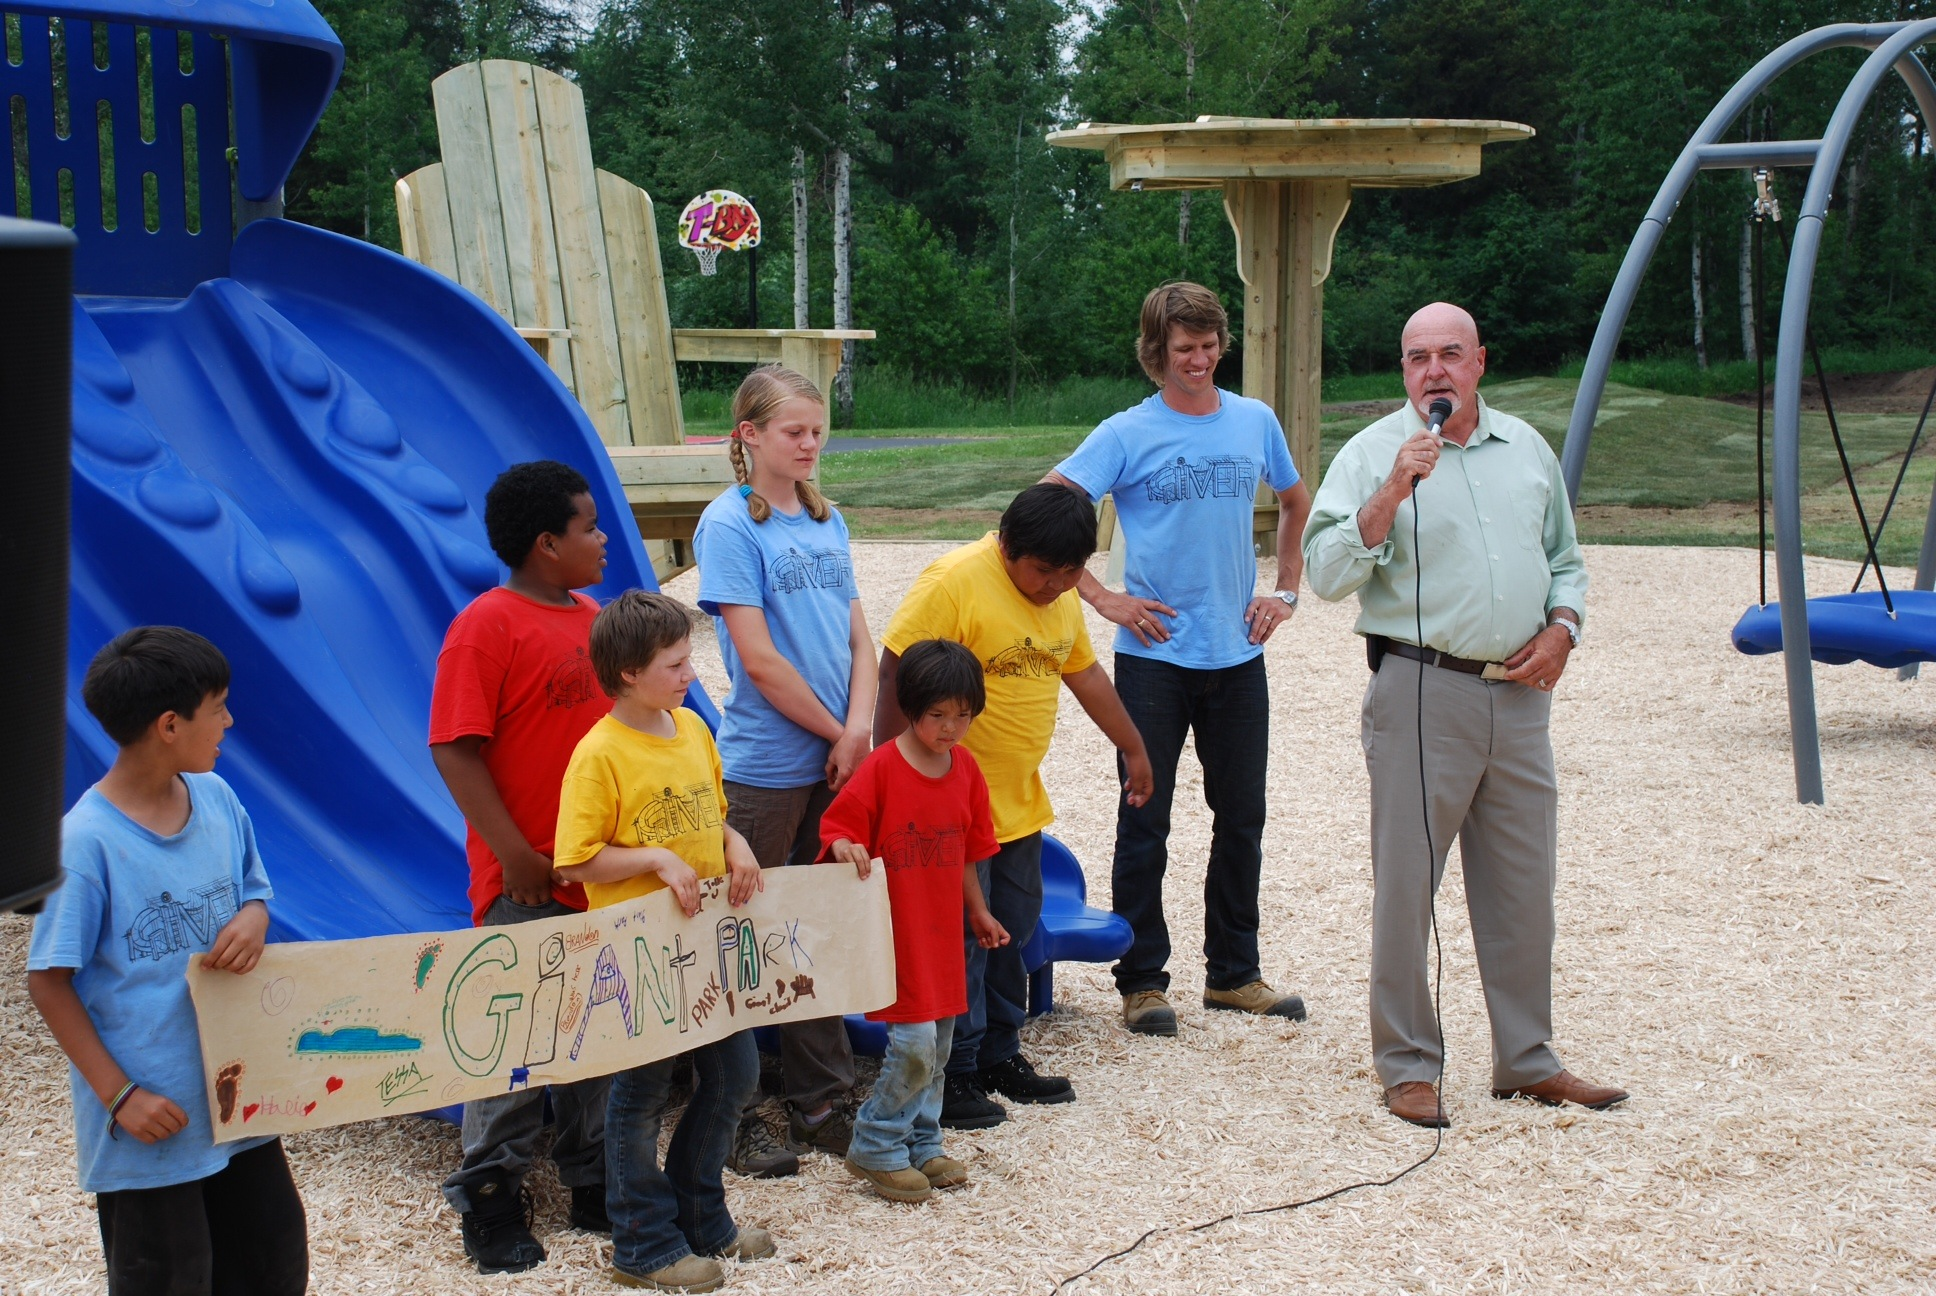 Youth Led Transformation of Picton Park Featured on TVO